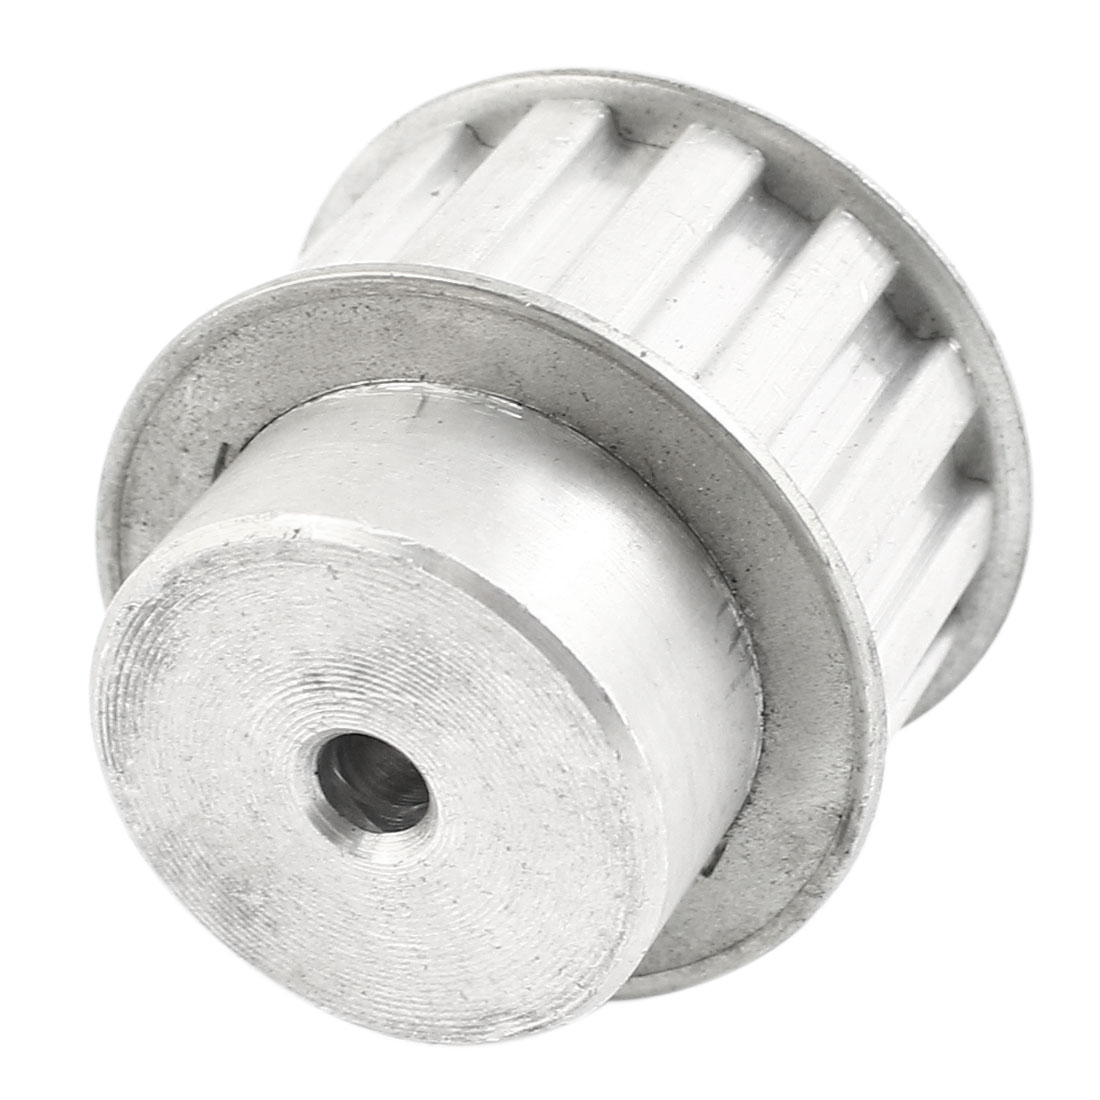 Aluminum Alloy L14 Type 14 Teeth 6mm Bore Dia Double Flanged Timing Pulley